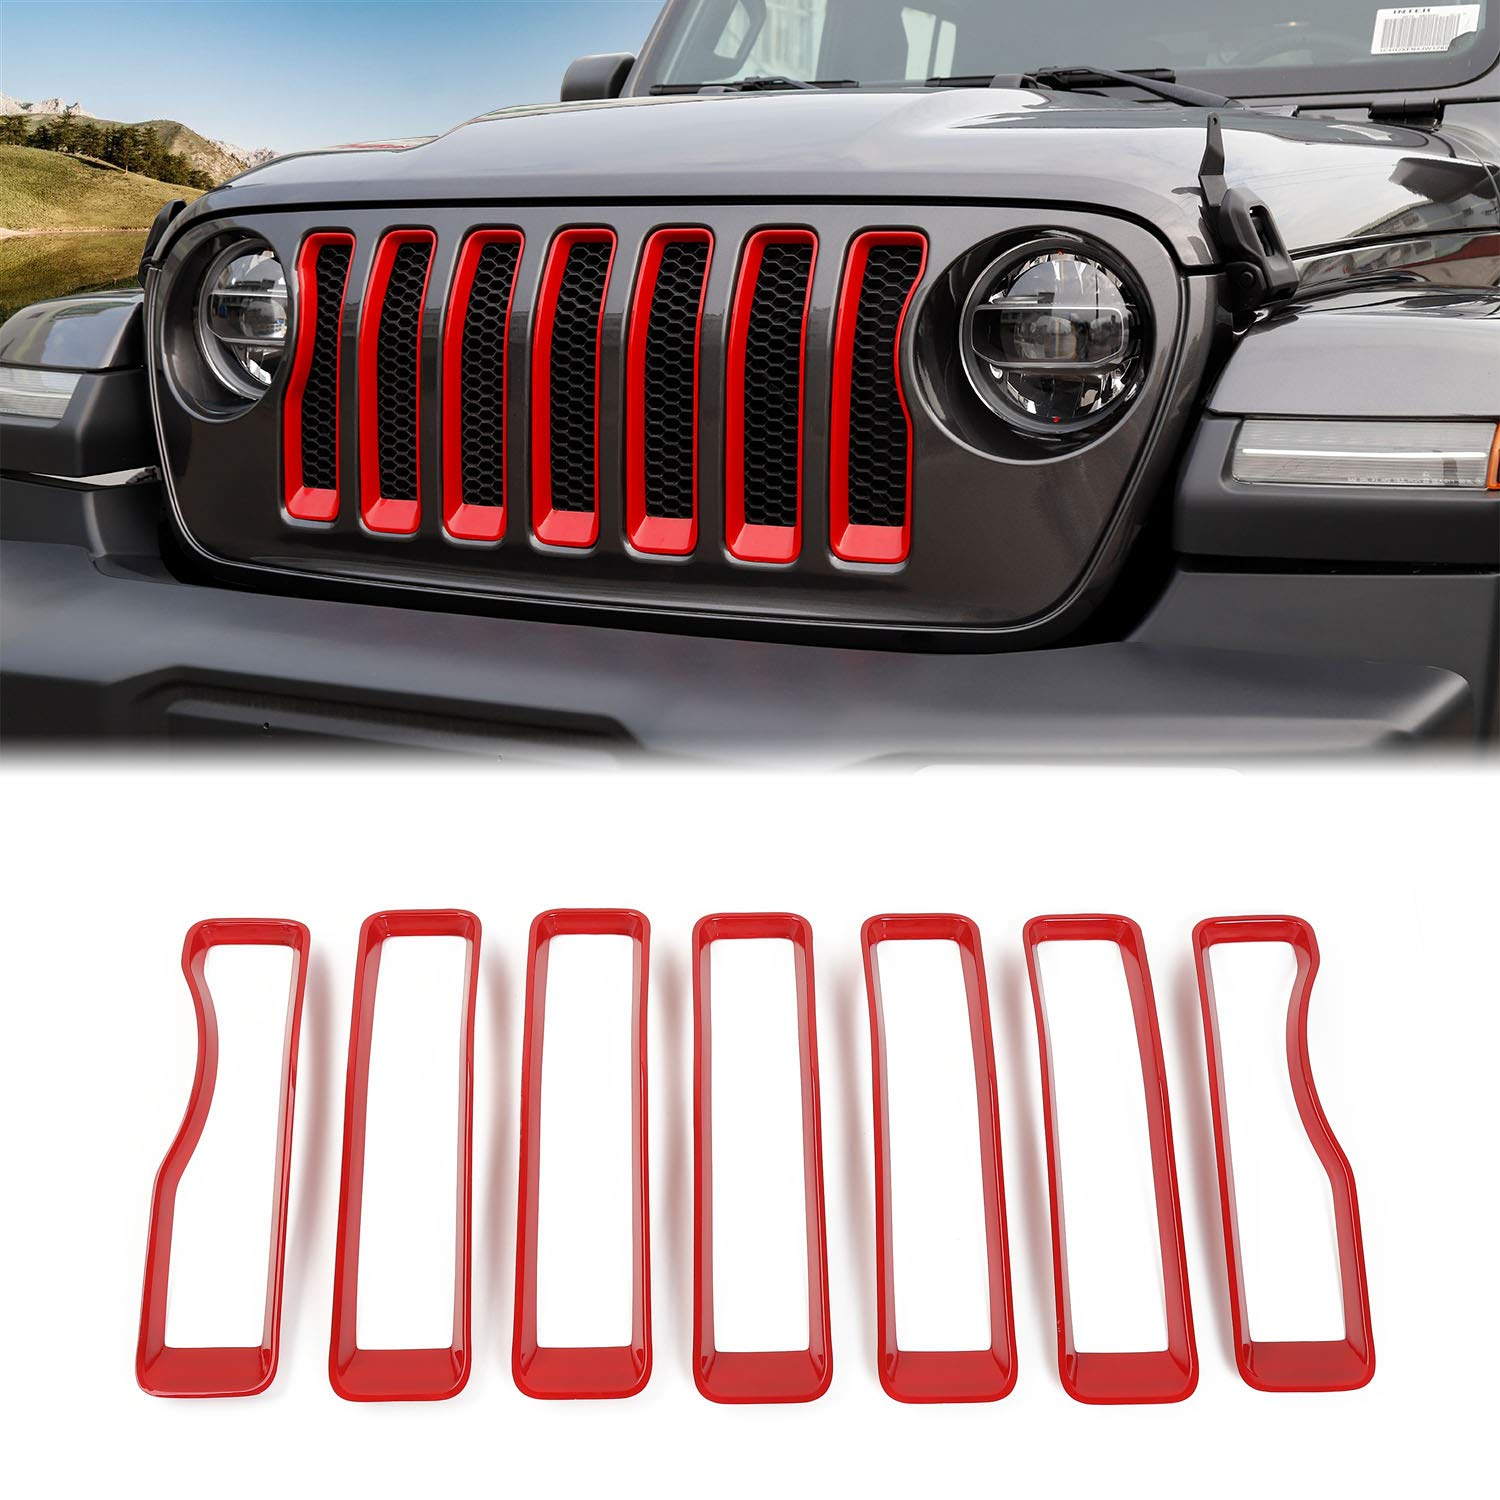 MCLP Fixed Swan Neck Towbar for JEEP PATRIOT 2007-2011 MK